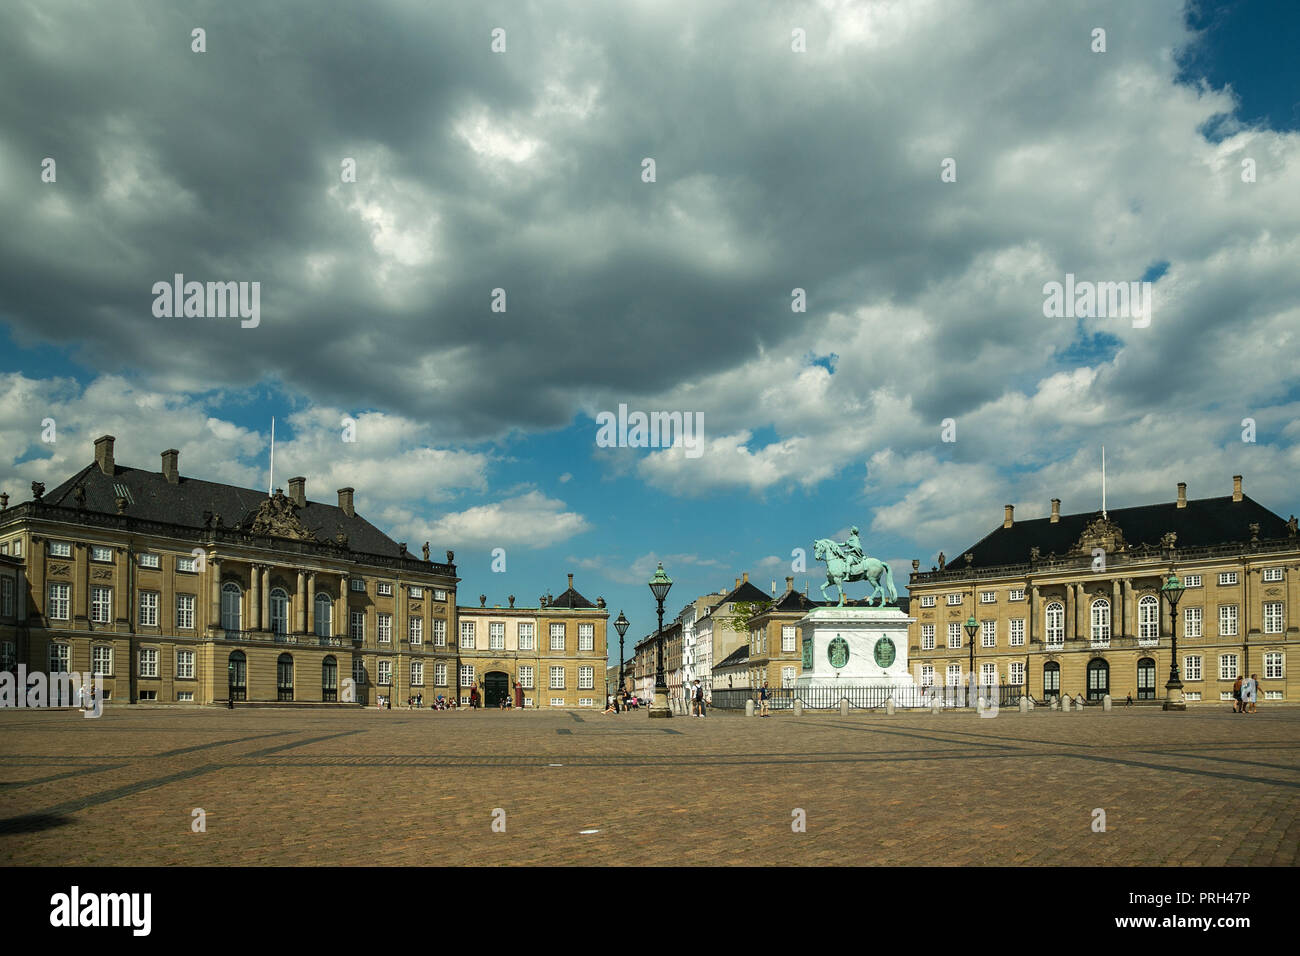 Amalienborg Palace,  the home of the Danish royal family - Stock Image